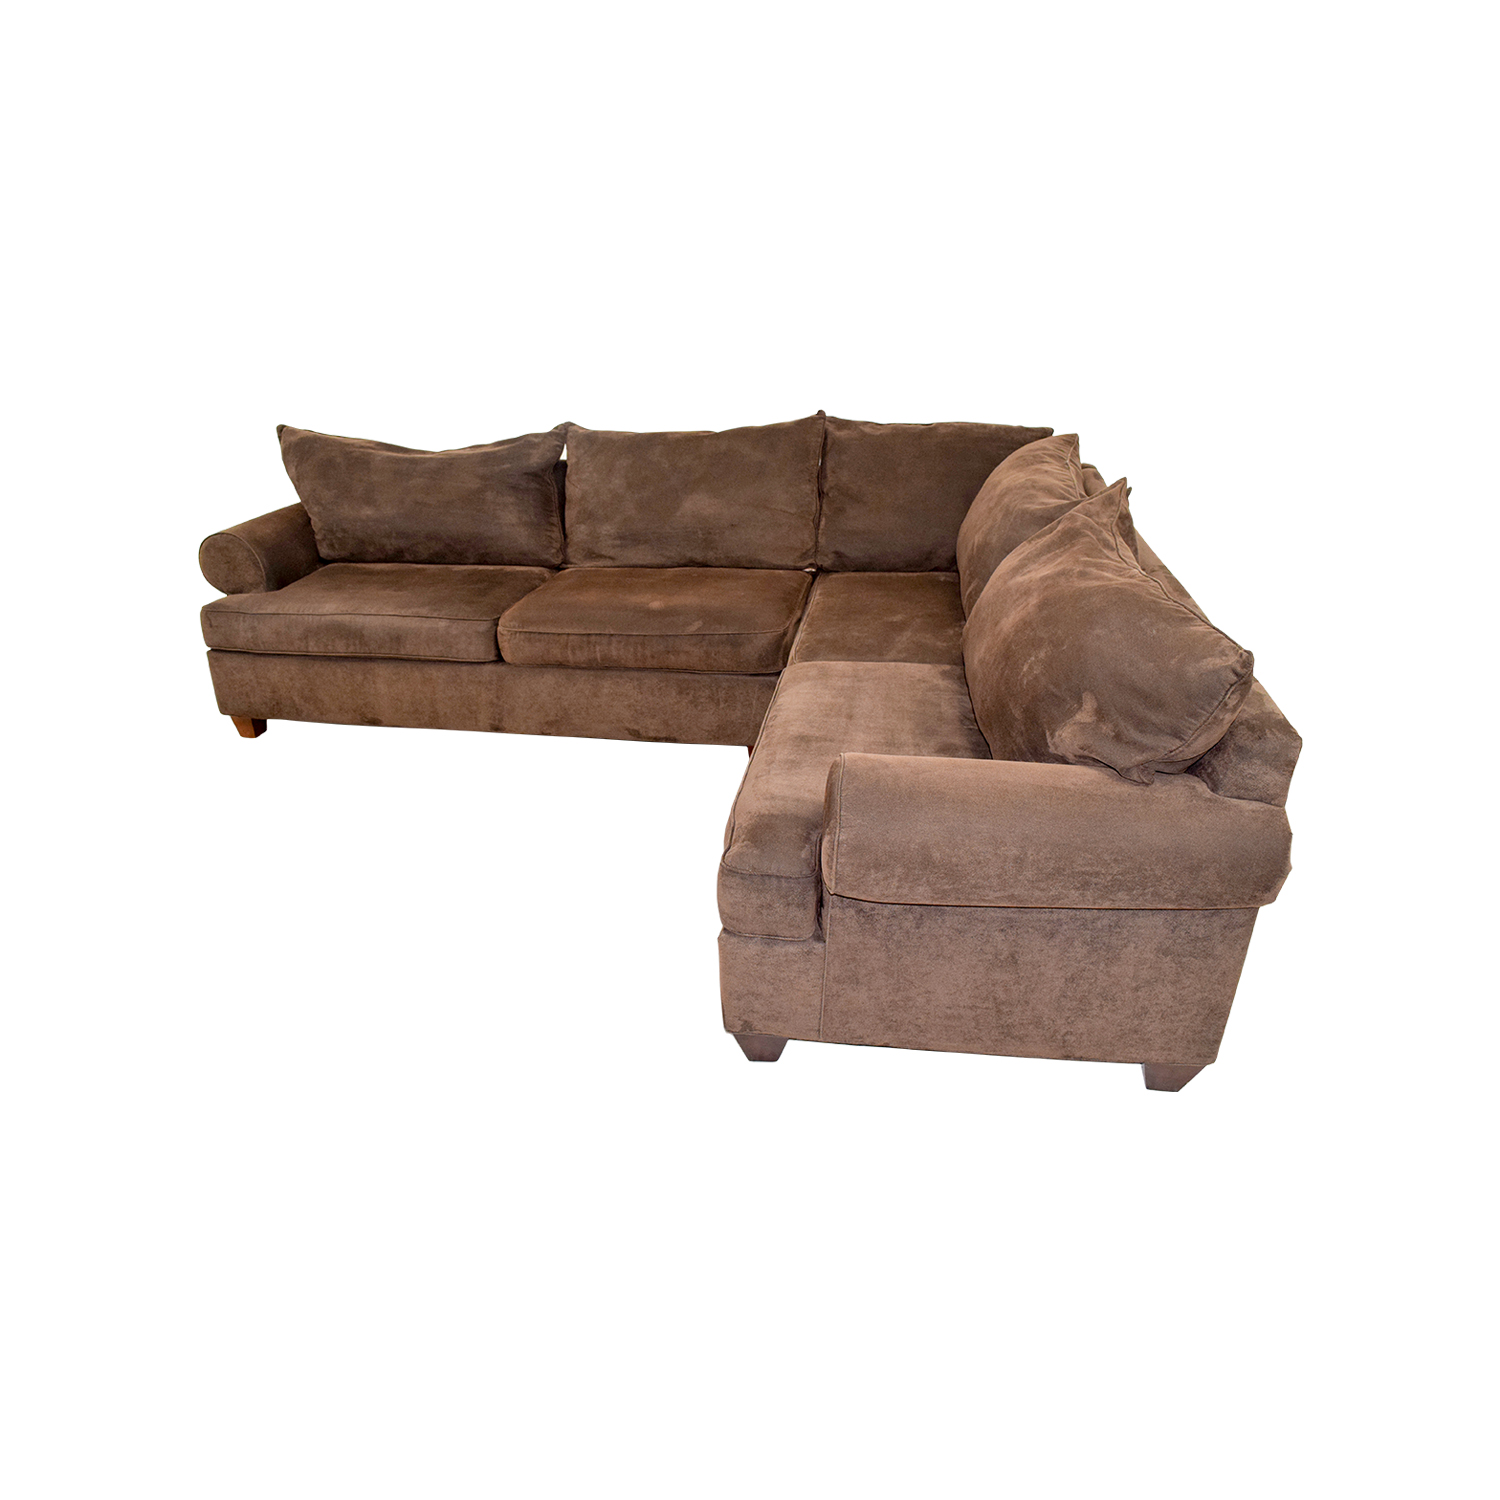 75 off brown corduroy l shaped sectional couch sofas for Brown corduroy couch